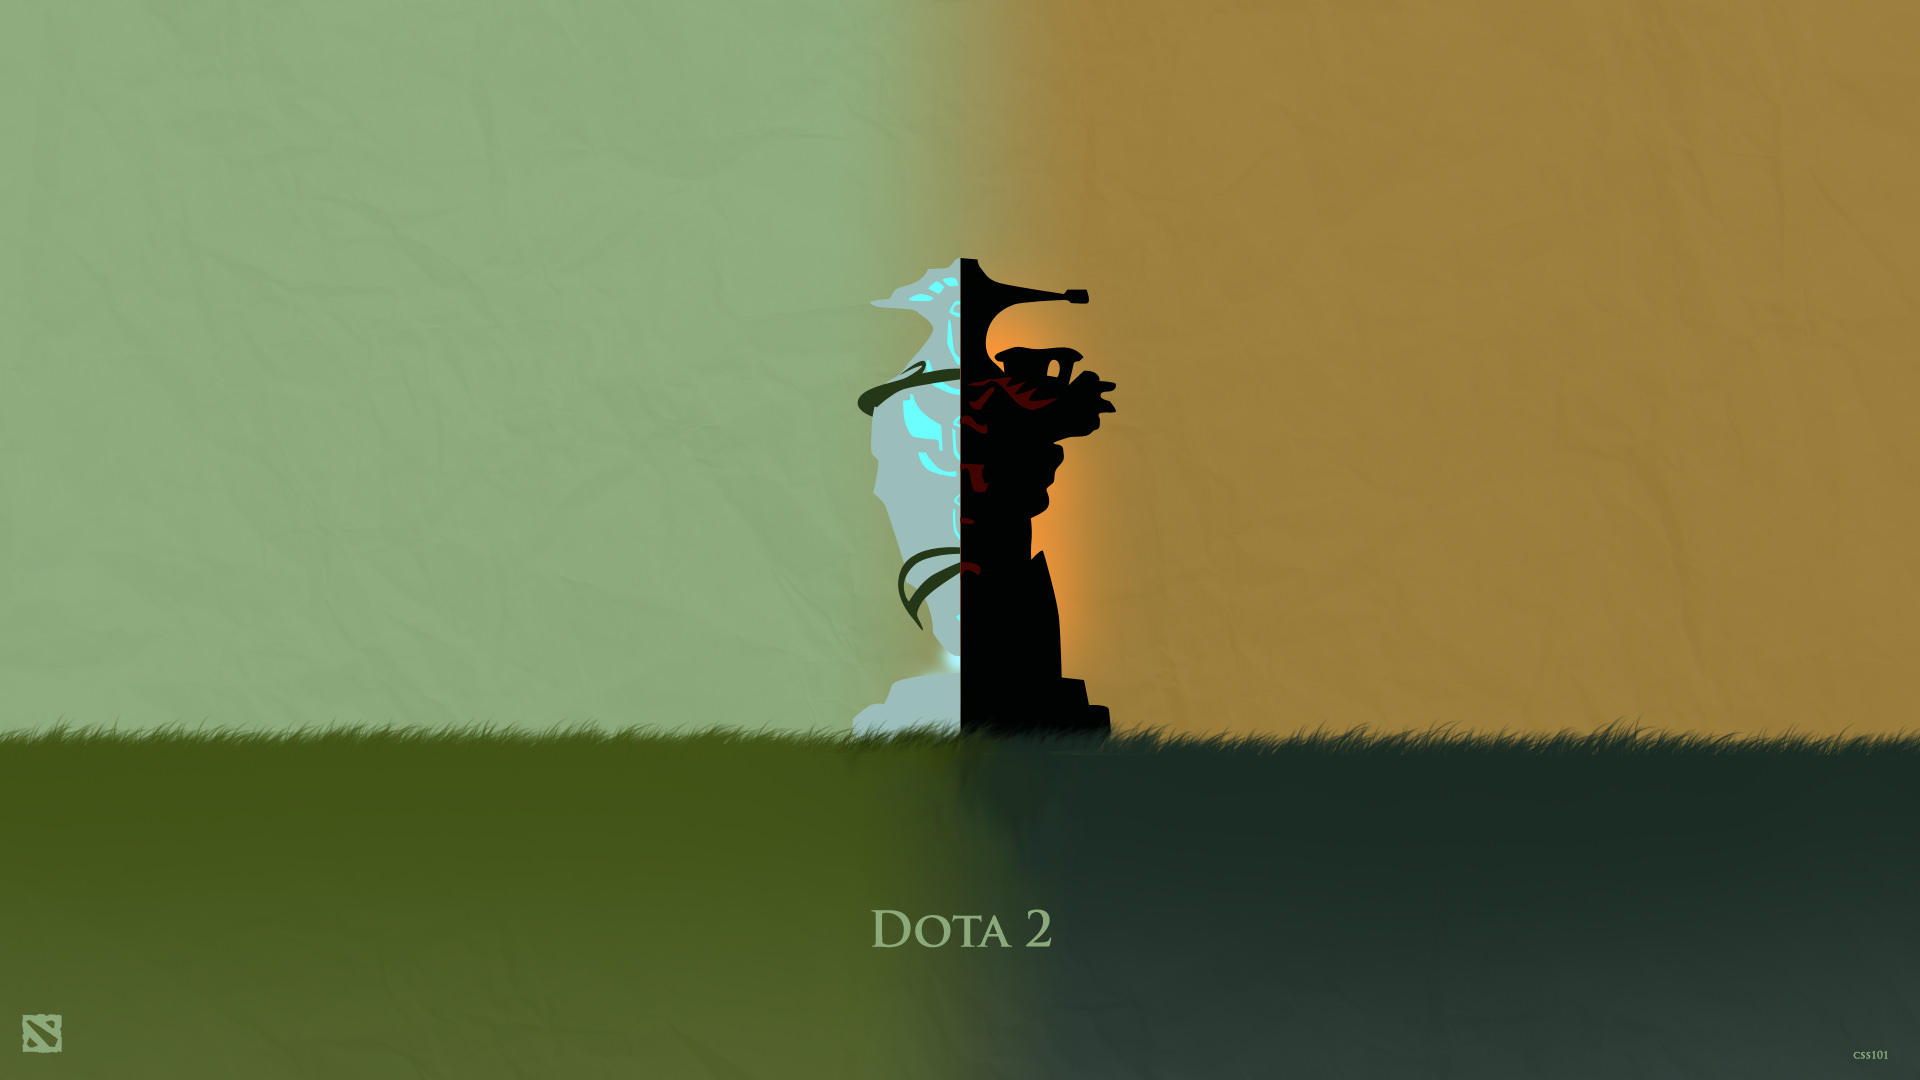 50 beautiful dota 2 posters & heroes silhouette hd wallpapers